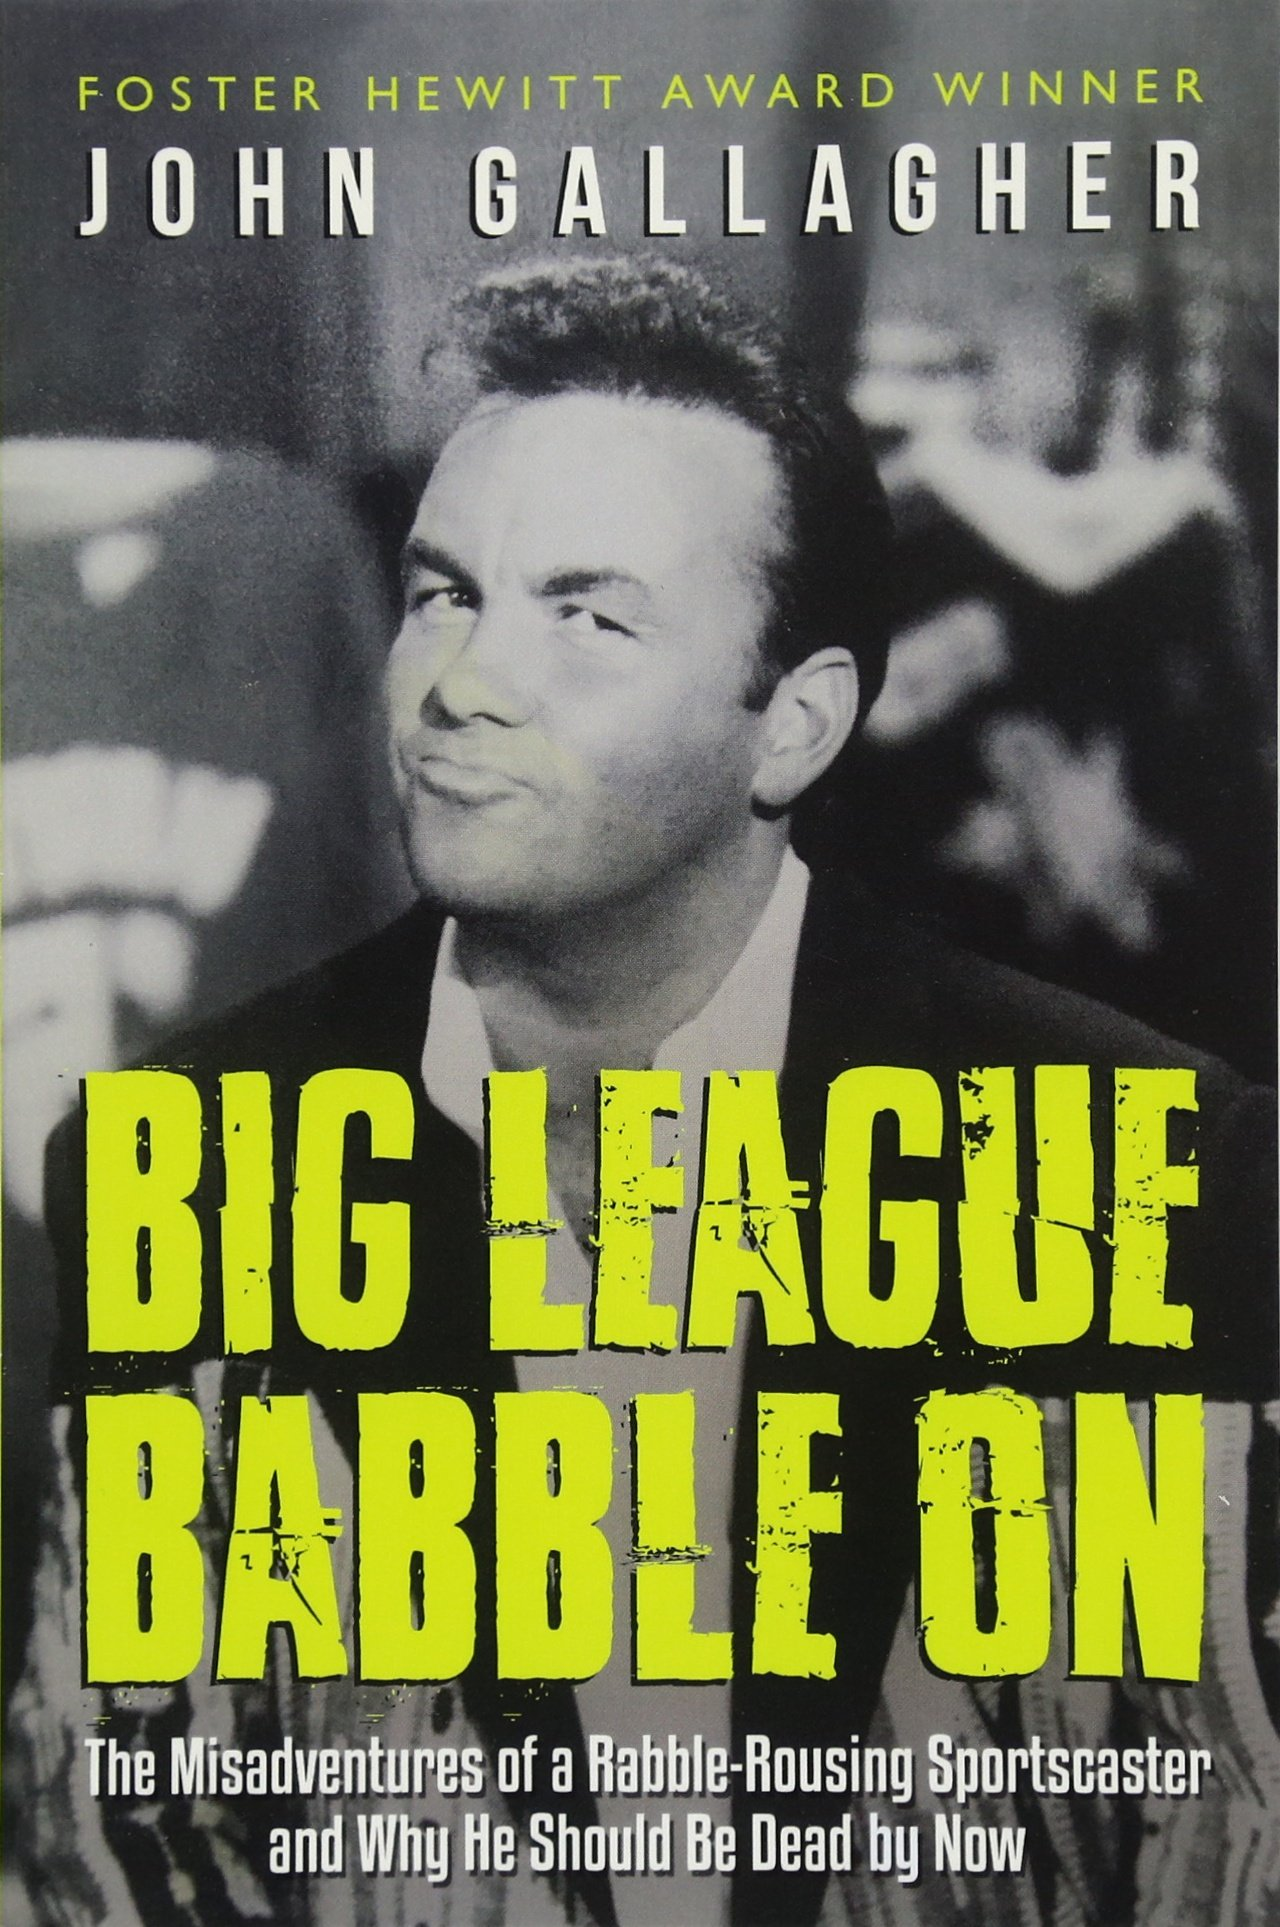 Big League Babble On: The Misadventures of a Rabble-Rousing Sportscaster and Why He Should Be Dead By Now